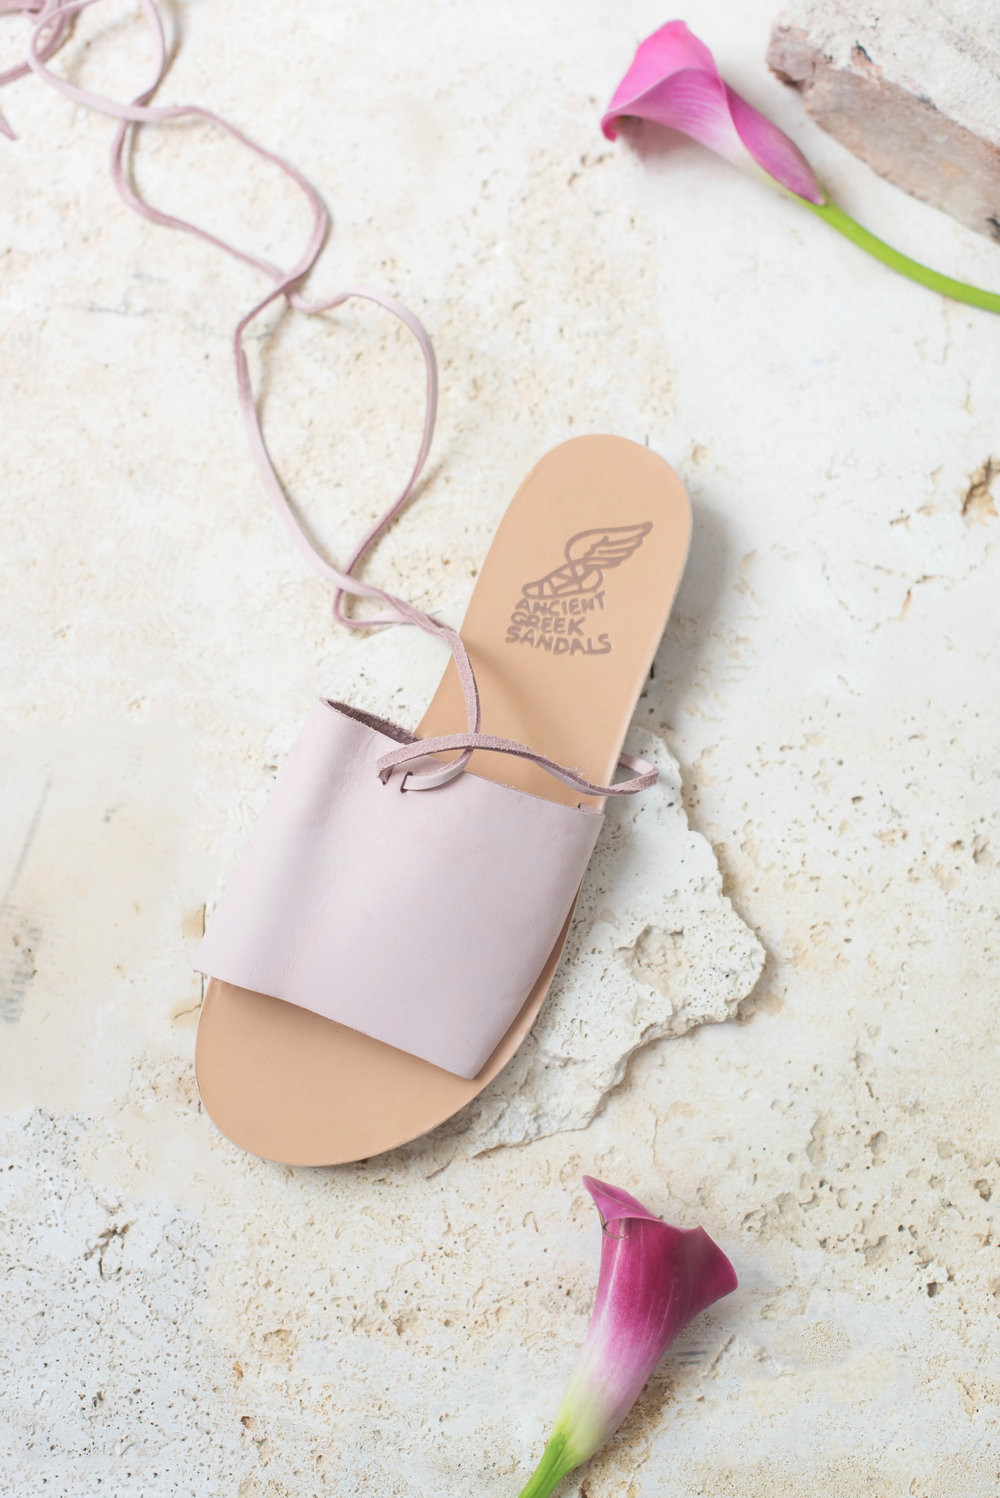 ROSE & IVY Journal Sandals for Summer Ancient Greek Sandals